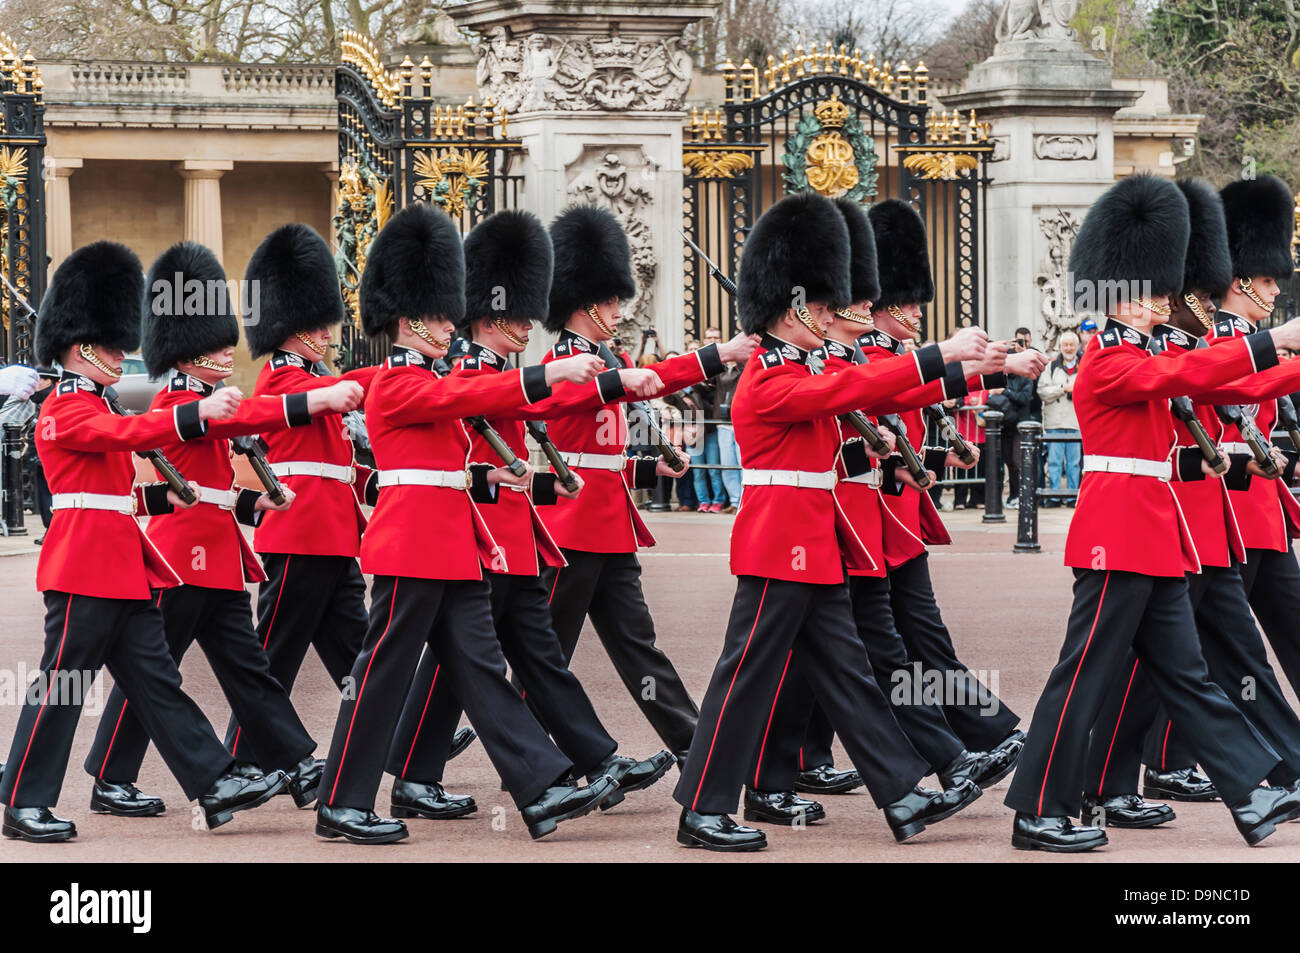 LONDON - APRIL 16: parade of queen's guards outside Buckingham Palace on April 16, 2013 in London - Stock Image